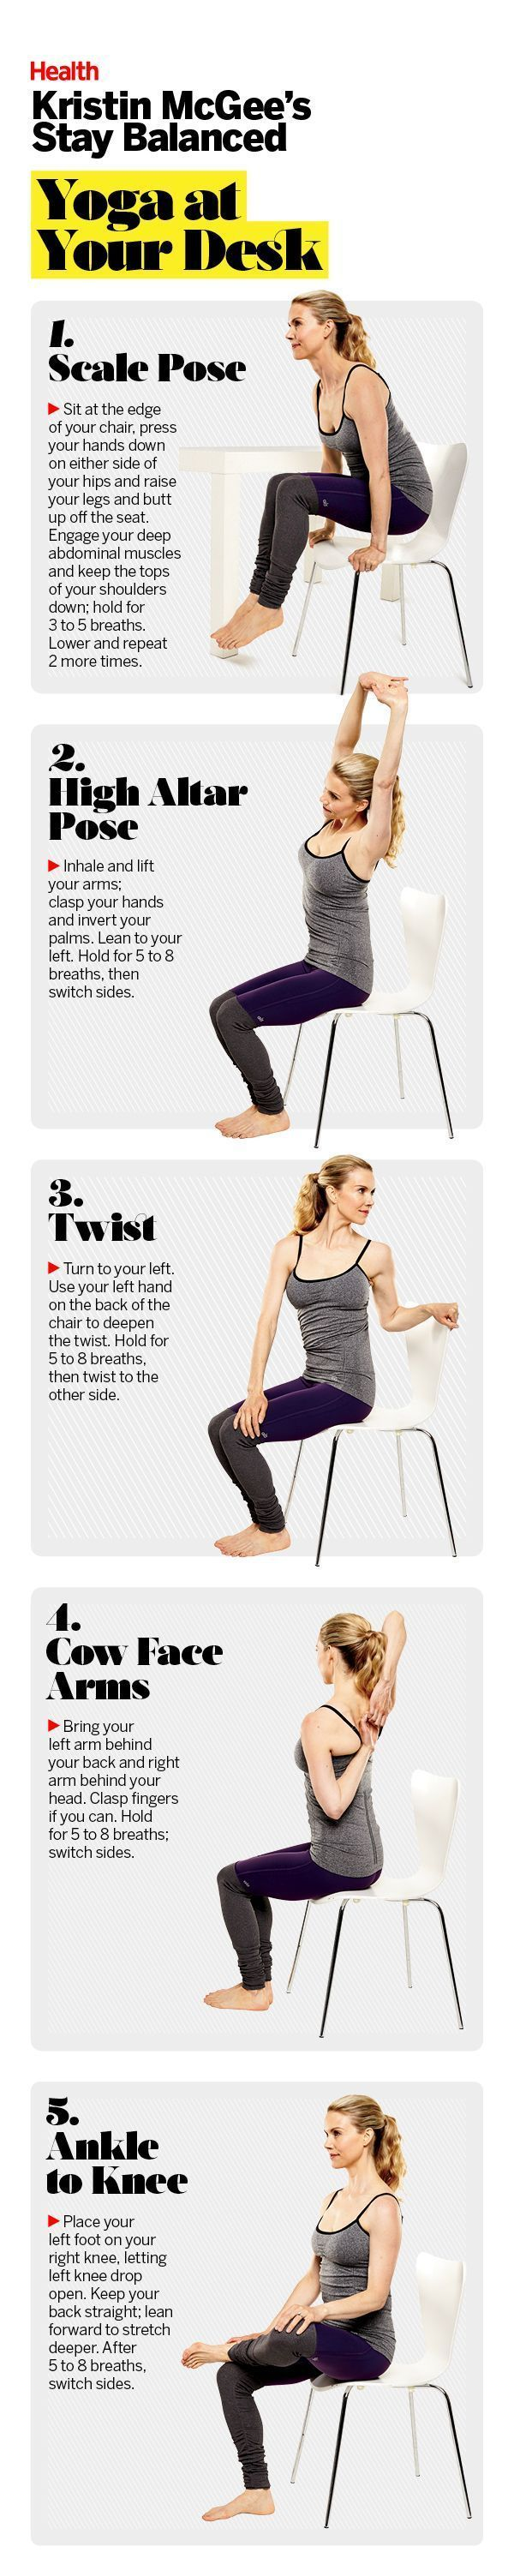 Stuck at a desk job? There are ways to sneak in exercise at work. These yoga moves ease neck and back strain and tone too! Best of all: You can do them all in your chair! | Health.com